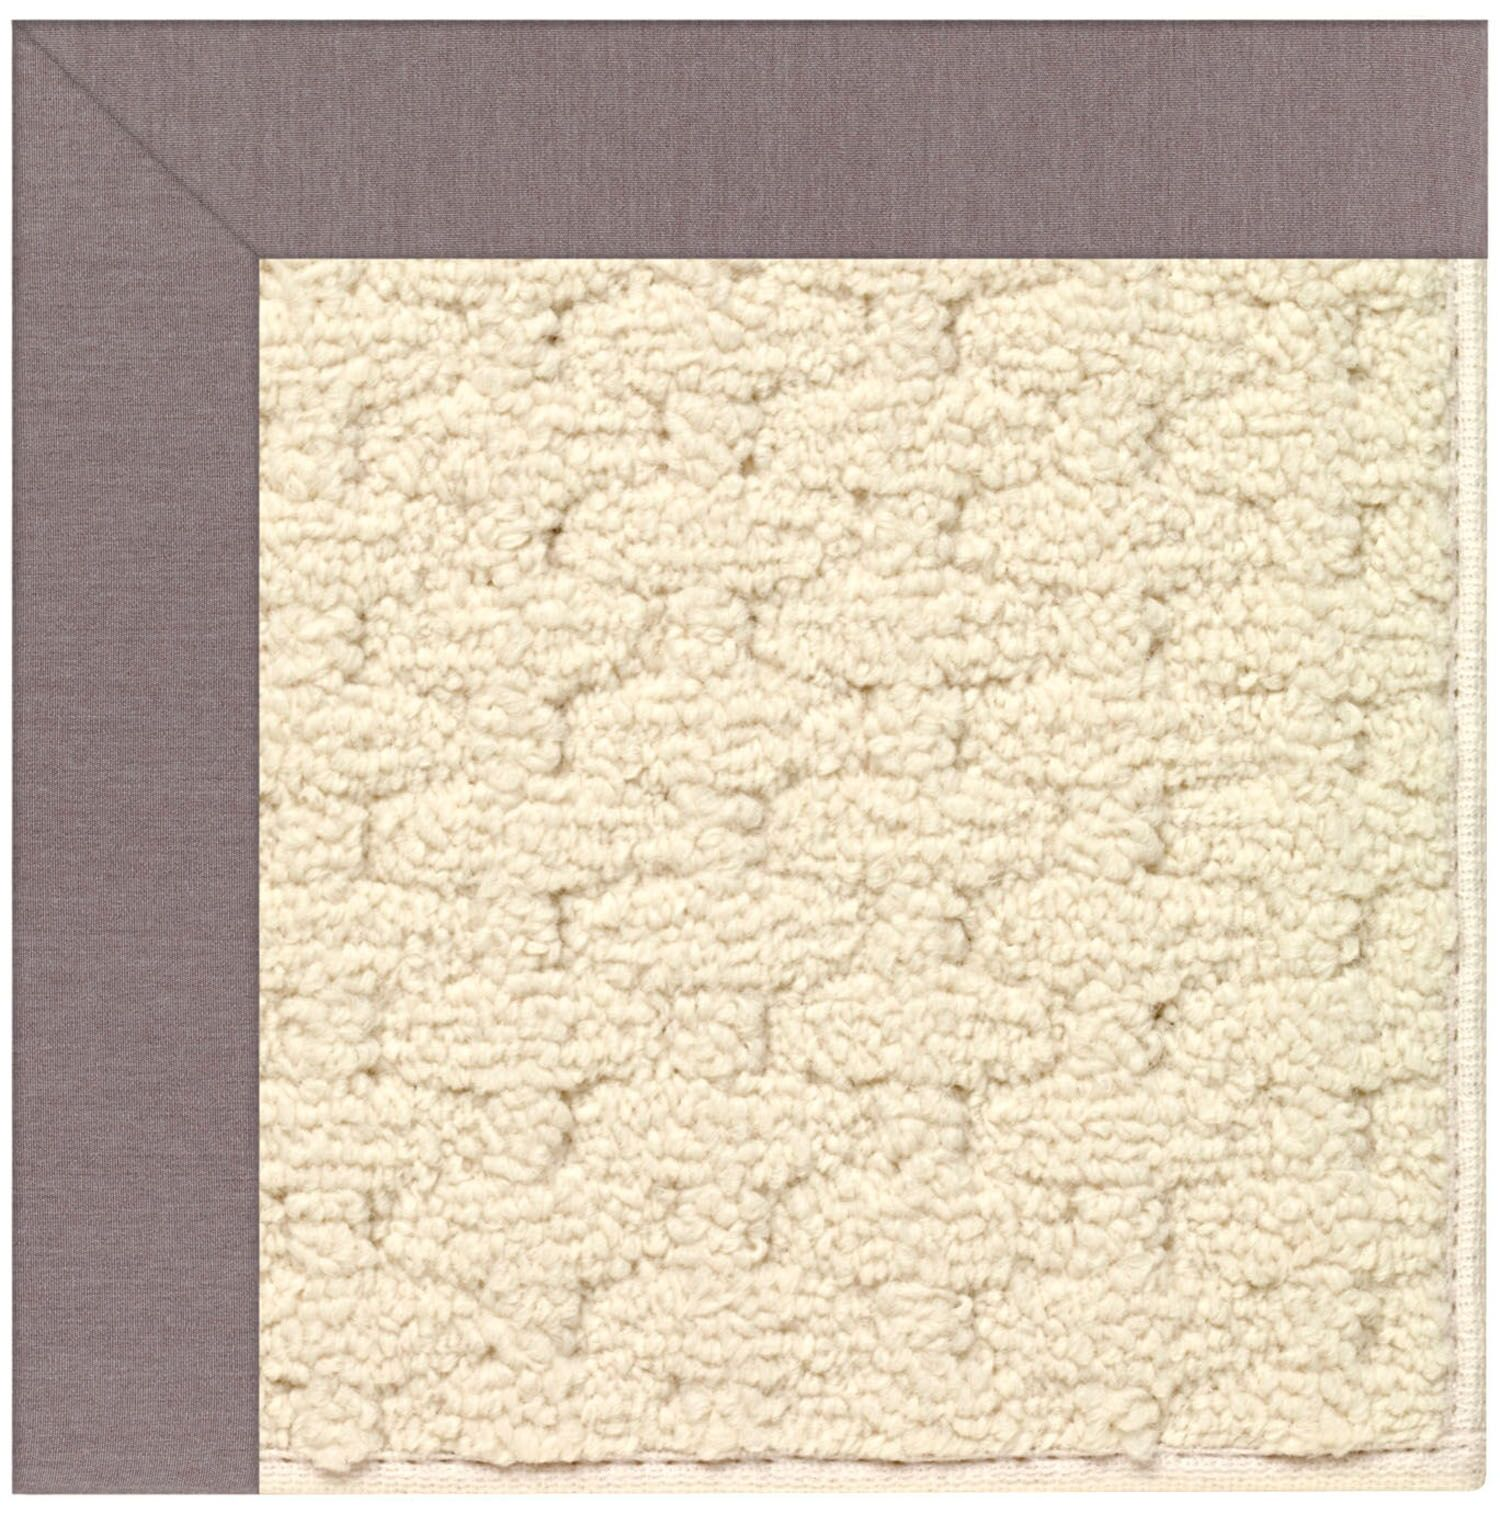 Lisle Off White Indoor/Outdoor Area Rug Rug Size: Rectangle 4' x 6'